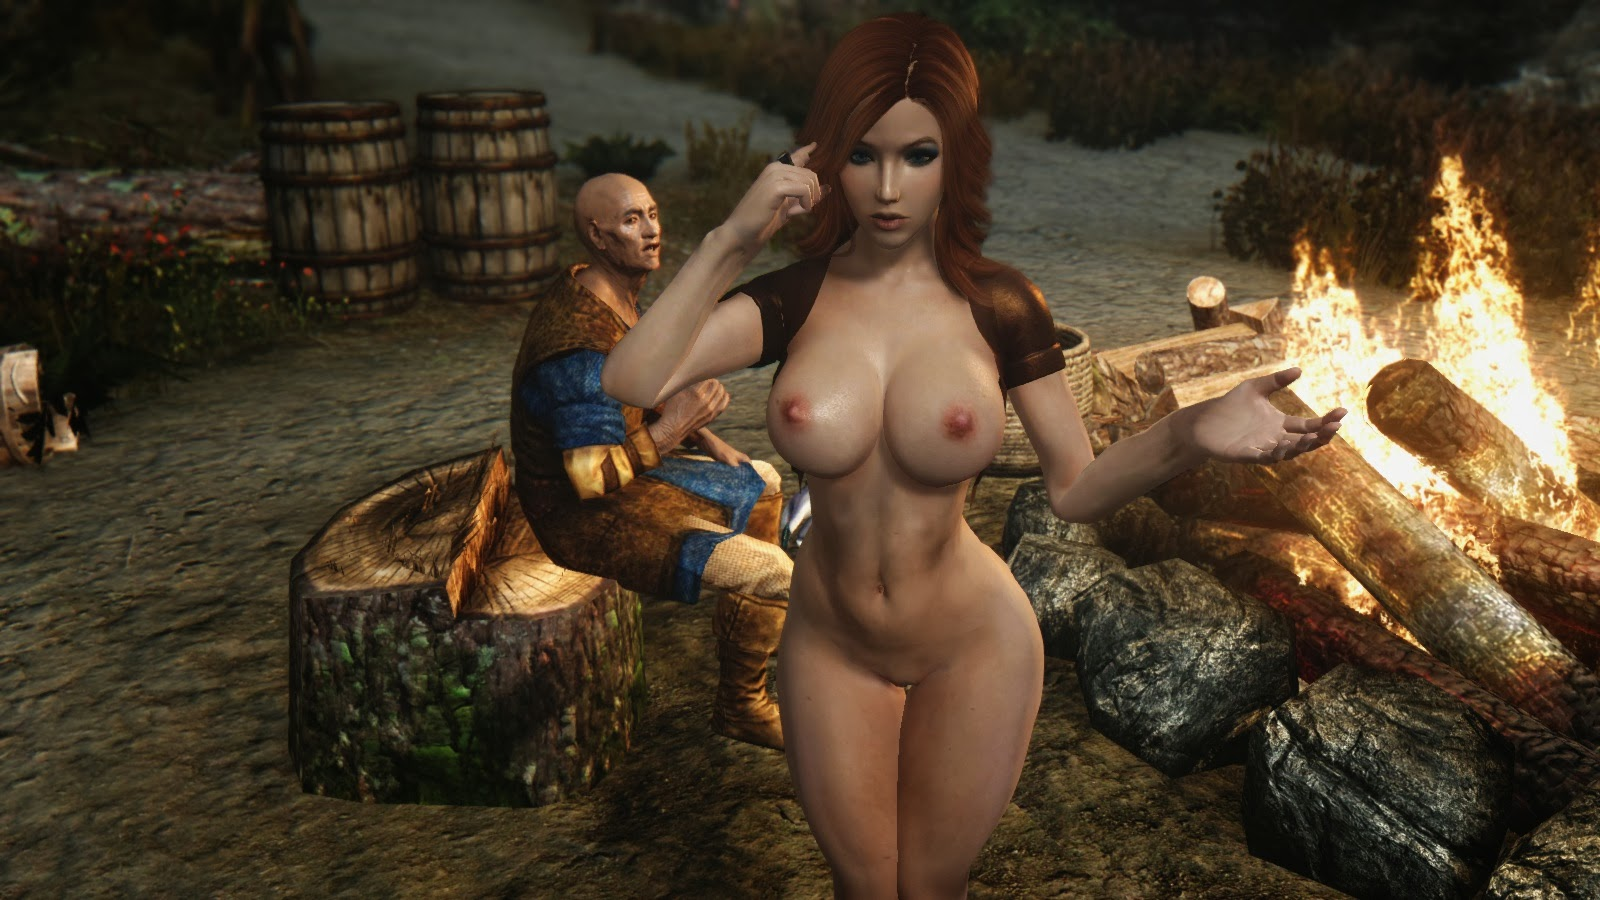 Skyrim mods nude not youtube erotic scenes